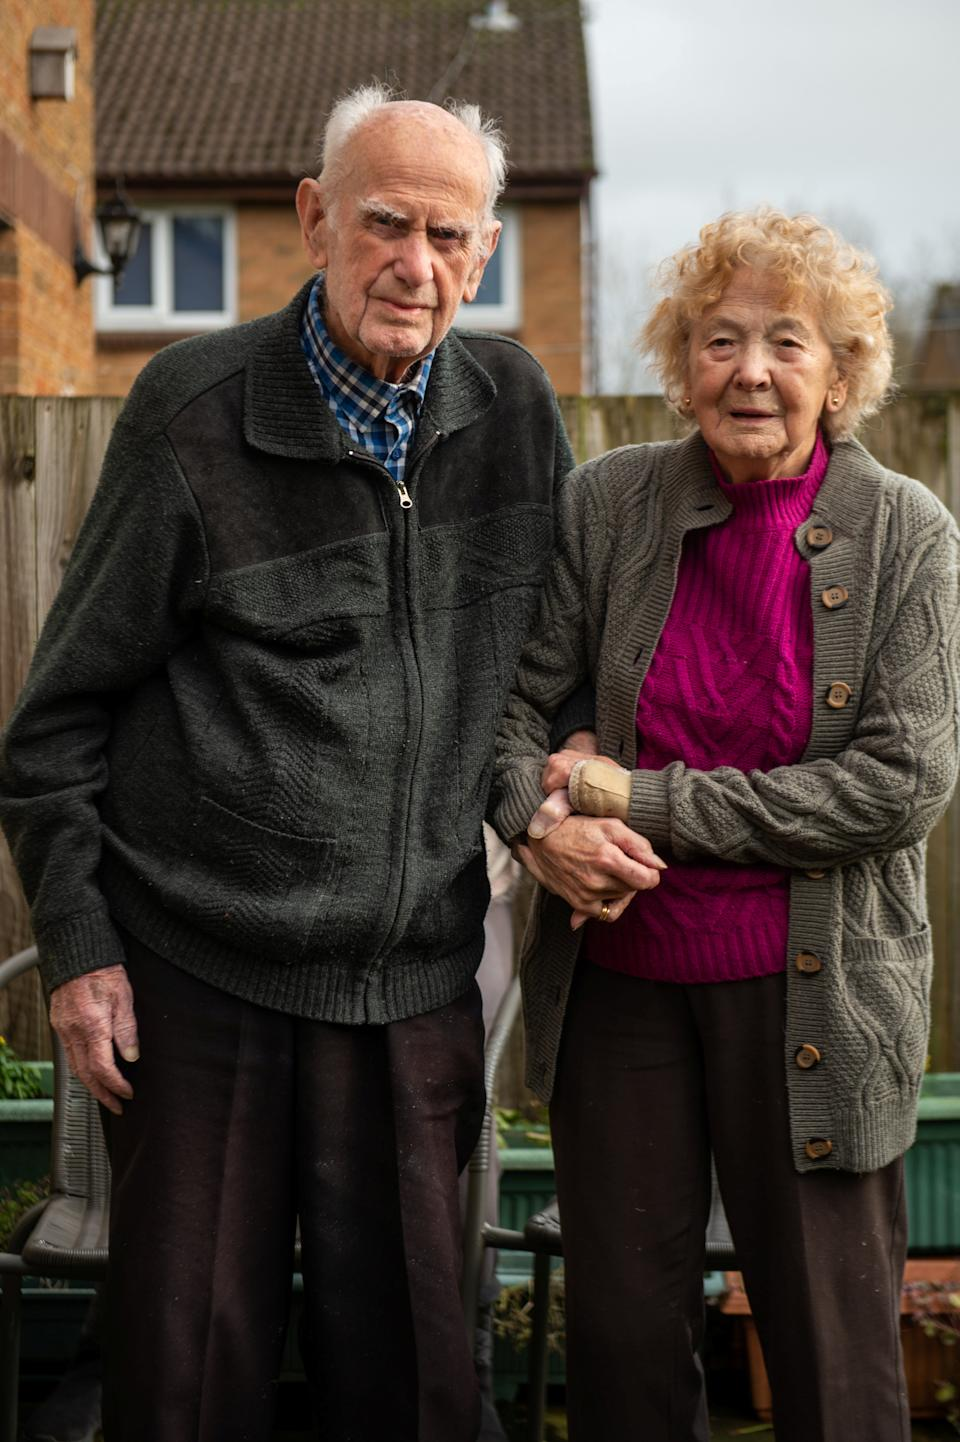 "Ron (100) and Beryl (98) Golightly, who have been married for 80 years, pictured at home near Harrogate, North Yorks. See SWNS story SWLEcouple; A husband and wife who met in their teens have become one of Britain's longest married couples after they celebrated their 80th wedding anniversary. Ron Golightly met his beloved Beryl when he was just 16 when one of his pals wolf-whistled at his future wife's friends as they walked past the group in the street. A 14-year-old Beryl turned round to see what was going on and instantly fell in love with Ron's curly hair and cheeky smile and the pair have been inseparable ever since. Beryl, now 98, said of Ron, now 100: ""I just knew as soon as I saw him I was going to marry him. ""I was 14 and Ron was 16, it was very much love at first sight. ""A couple of days later we spoke again and went for a walk, we were more or less a couple straight away. ""I thought he had whistled at me and I just fell in love with his cheeky grin straight away."" The couple tied the knot in their hometown of Harrogate, North Yorks., in 1941 while Ron, who served in the Brigadier Guards, was on leave from the Army during World War II."